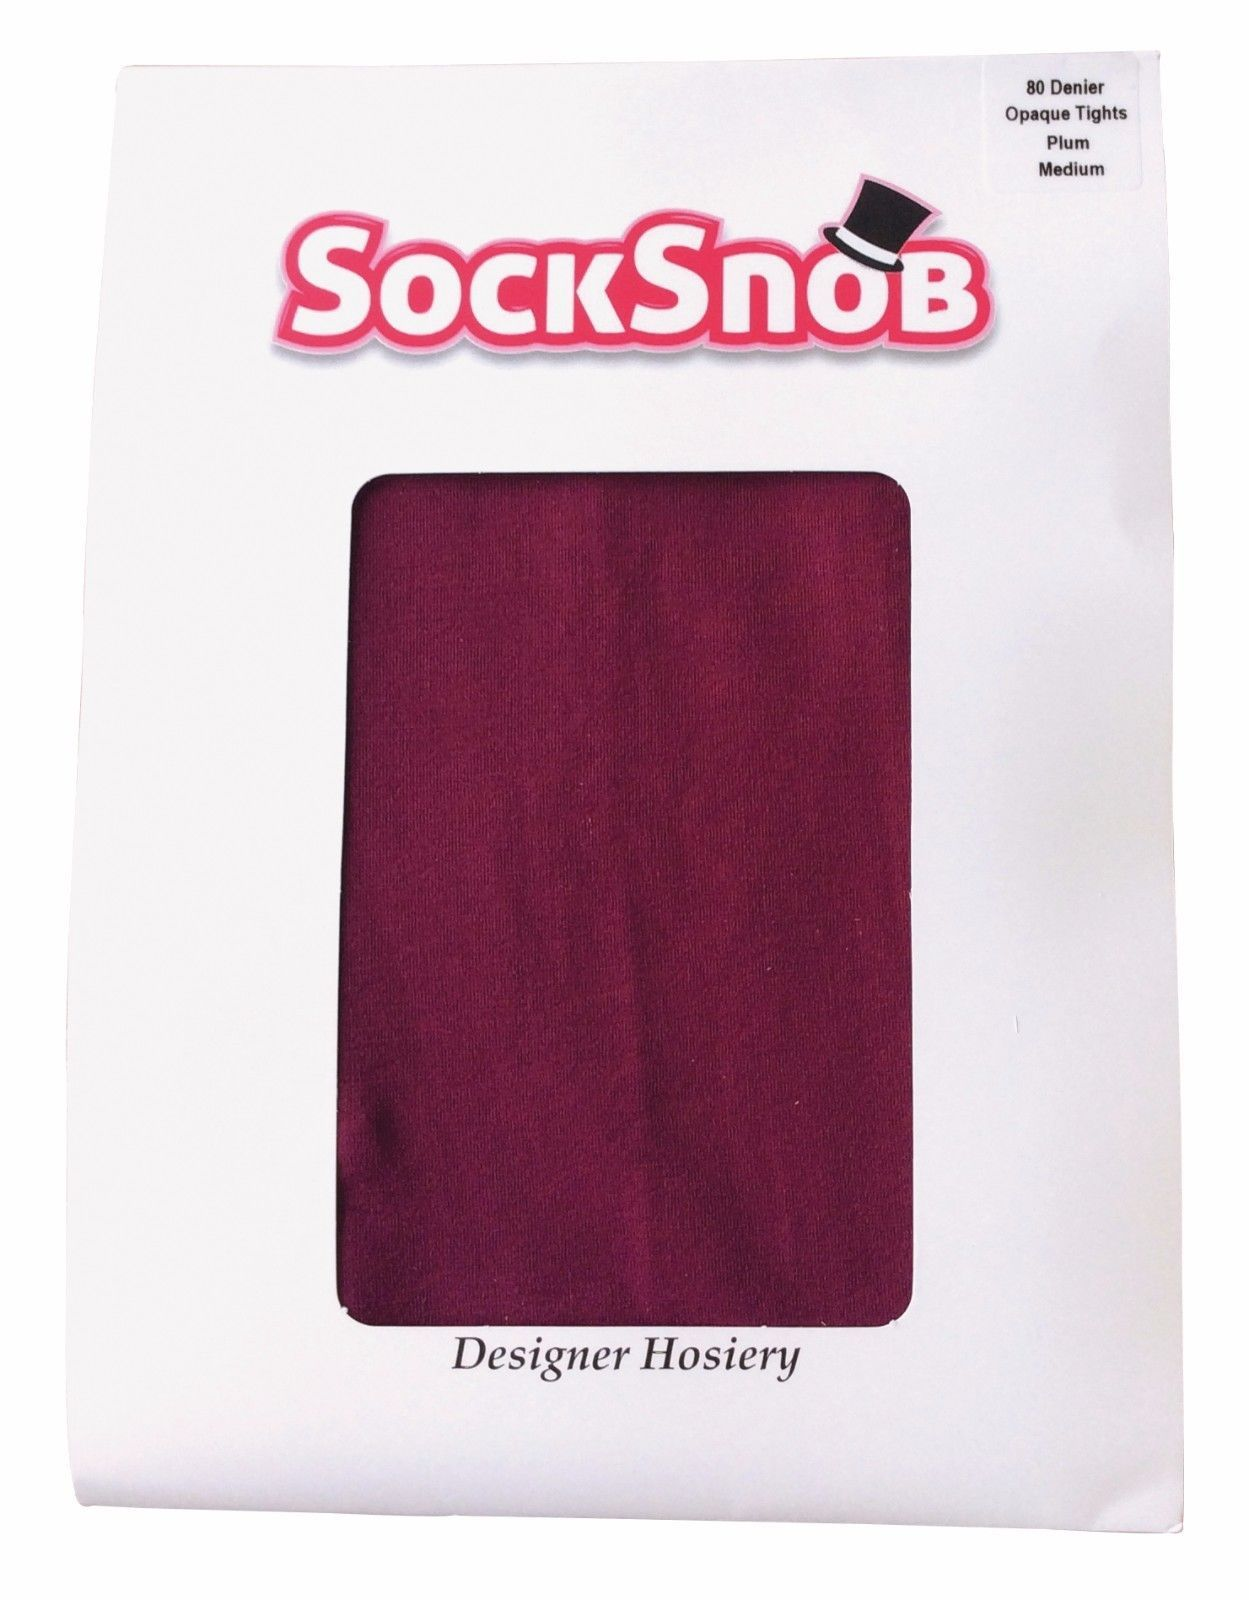 Sock Snob - Womens Ladies 80 Denier Thick Opaque Colourful Matte Warm Tights